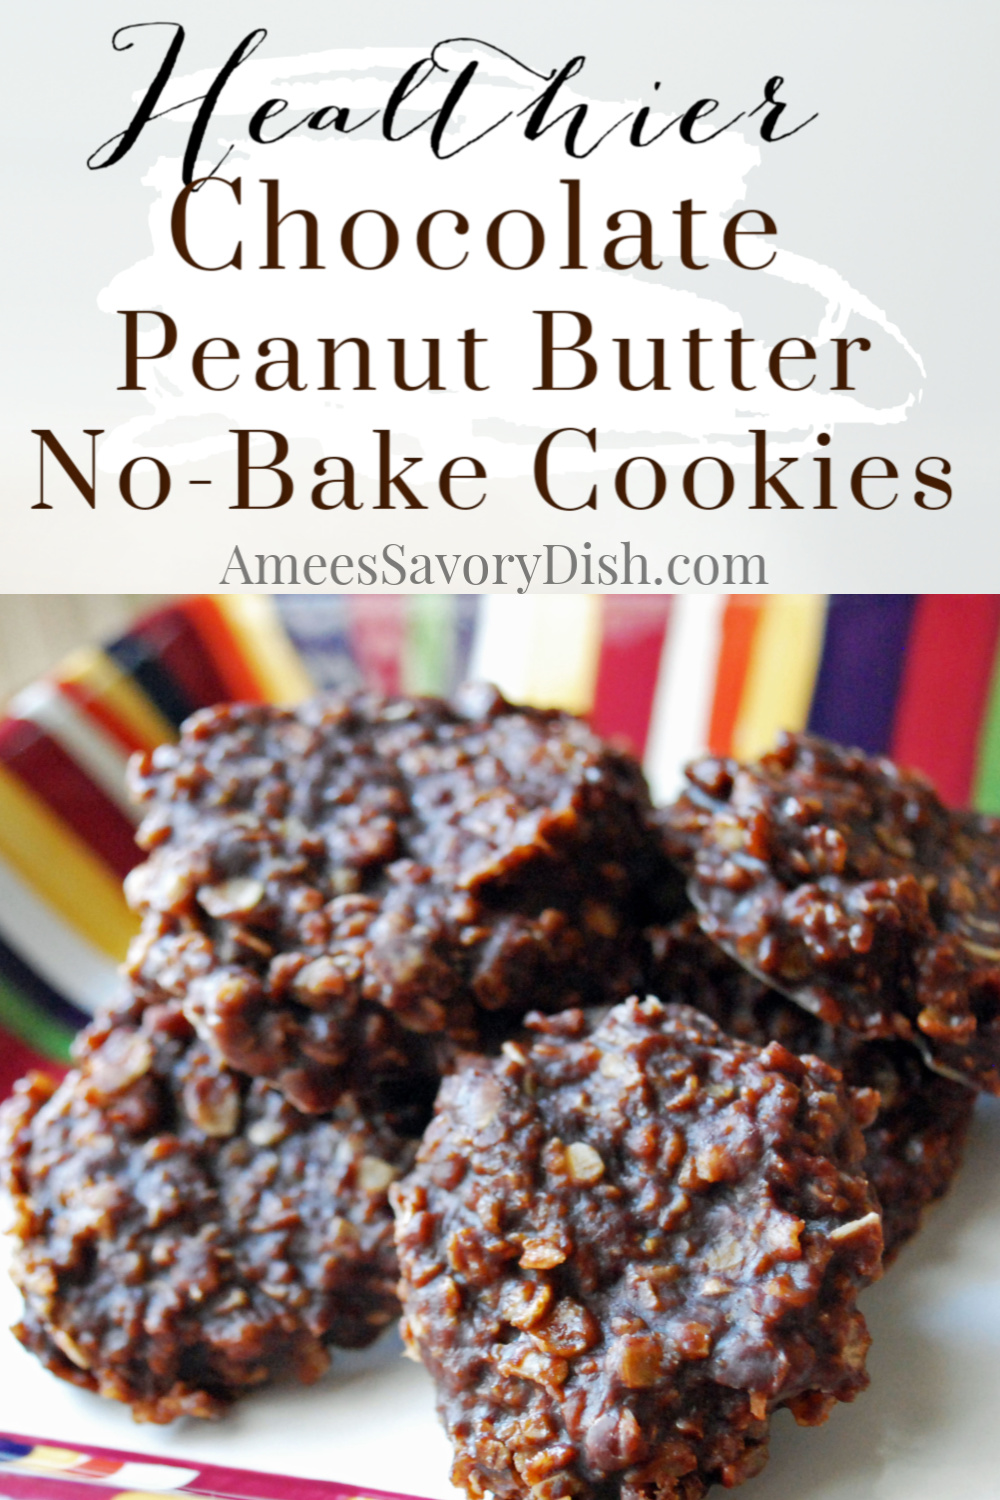 This healthier chocolate peanut butter no-bake cookies recipe is made with better ingredients, but still crazy delicious!! Betcha can't eat just one! via @Ameessavorydish